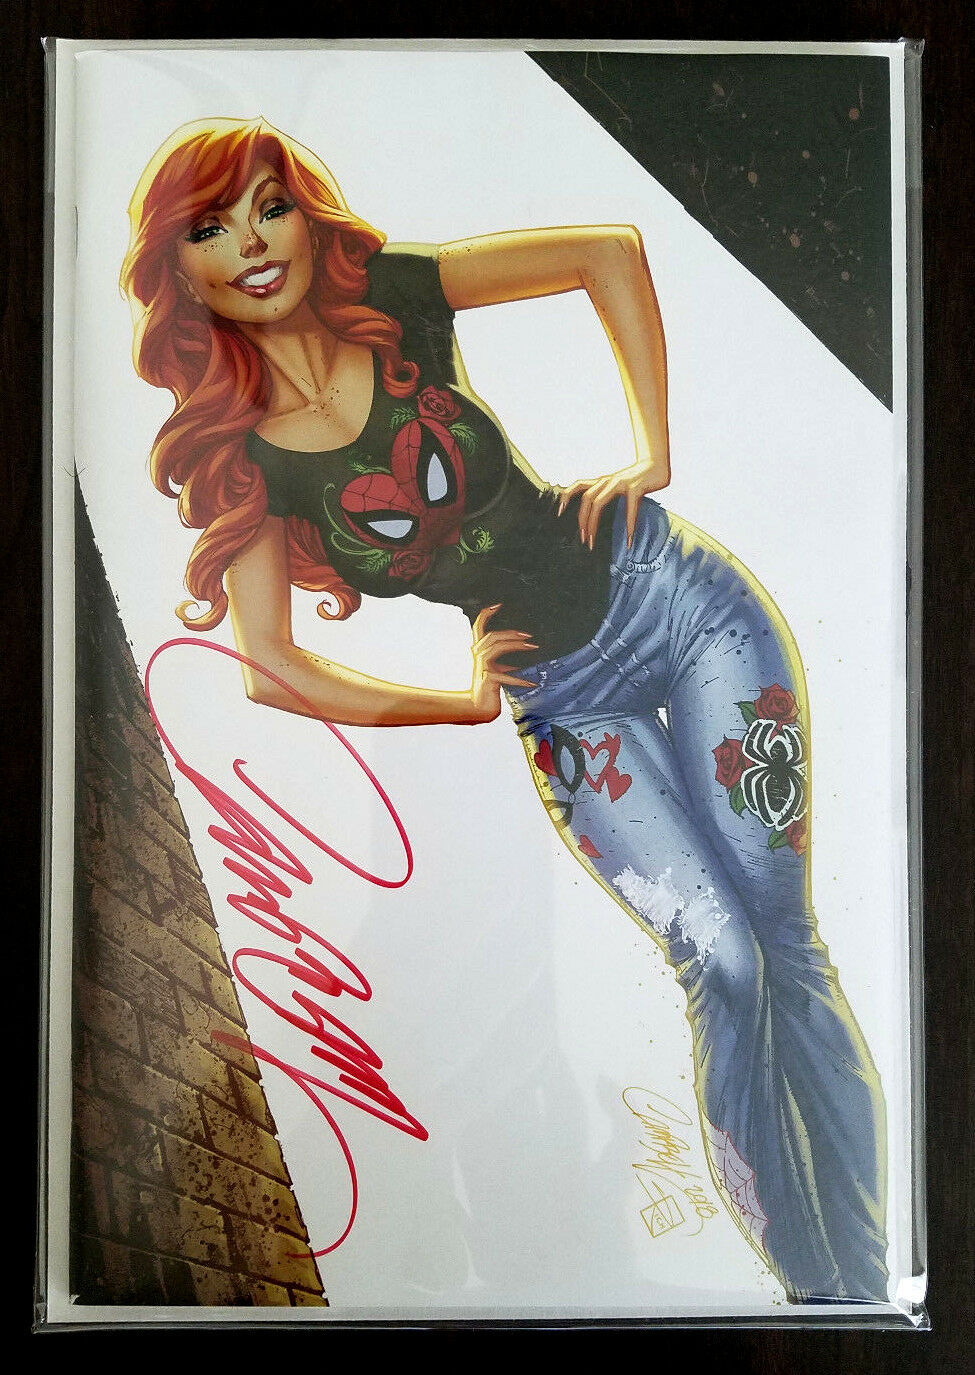 SDCC Amazing Spider-Man #800 Virgin Mary Jane SIGNED J Scott Campbell Variant 2018